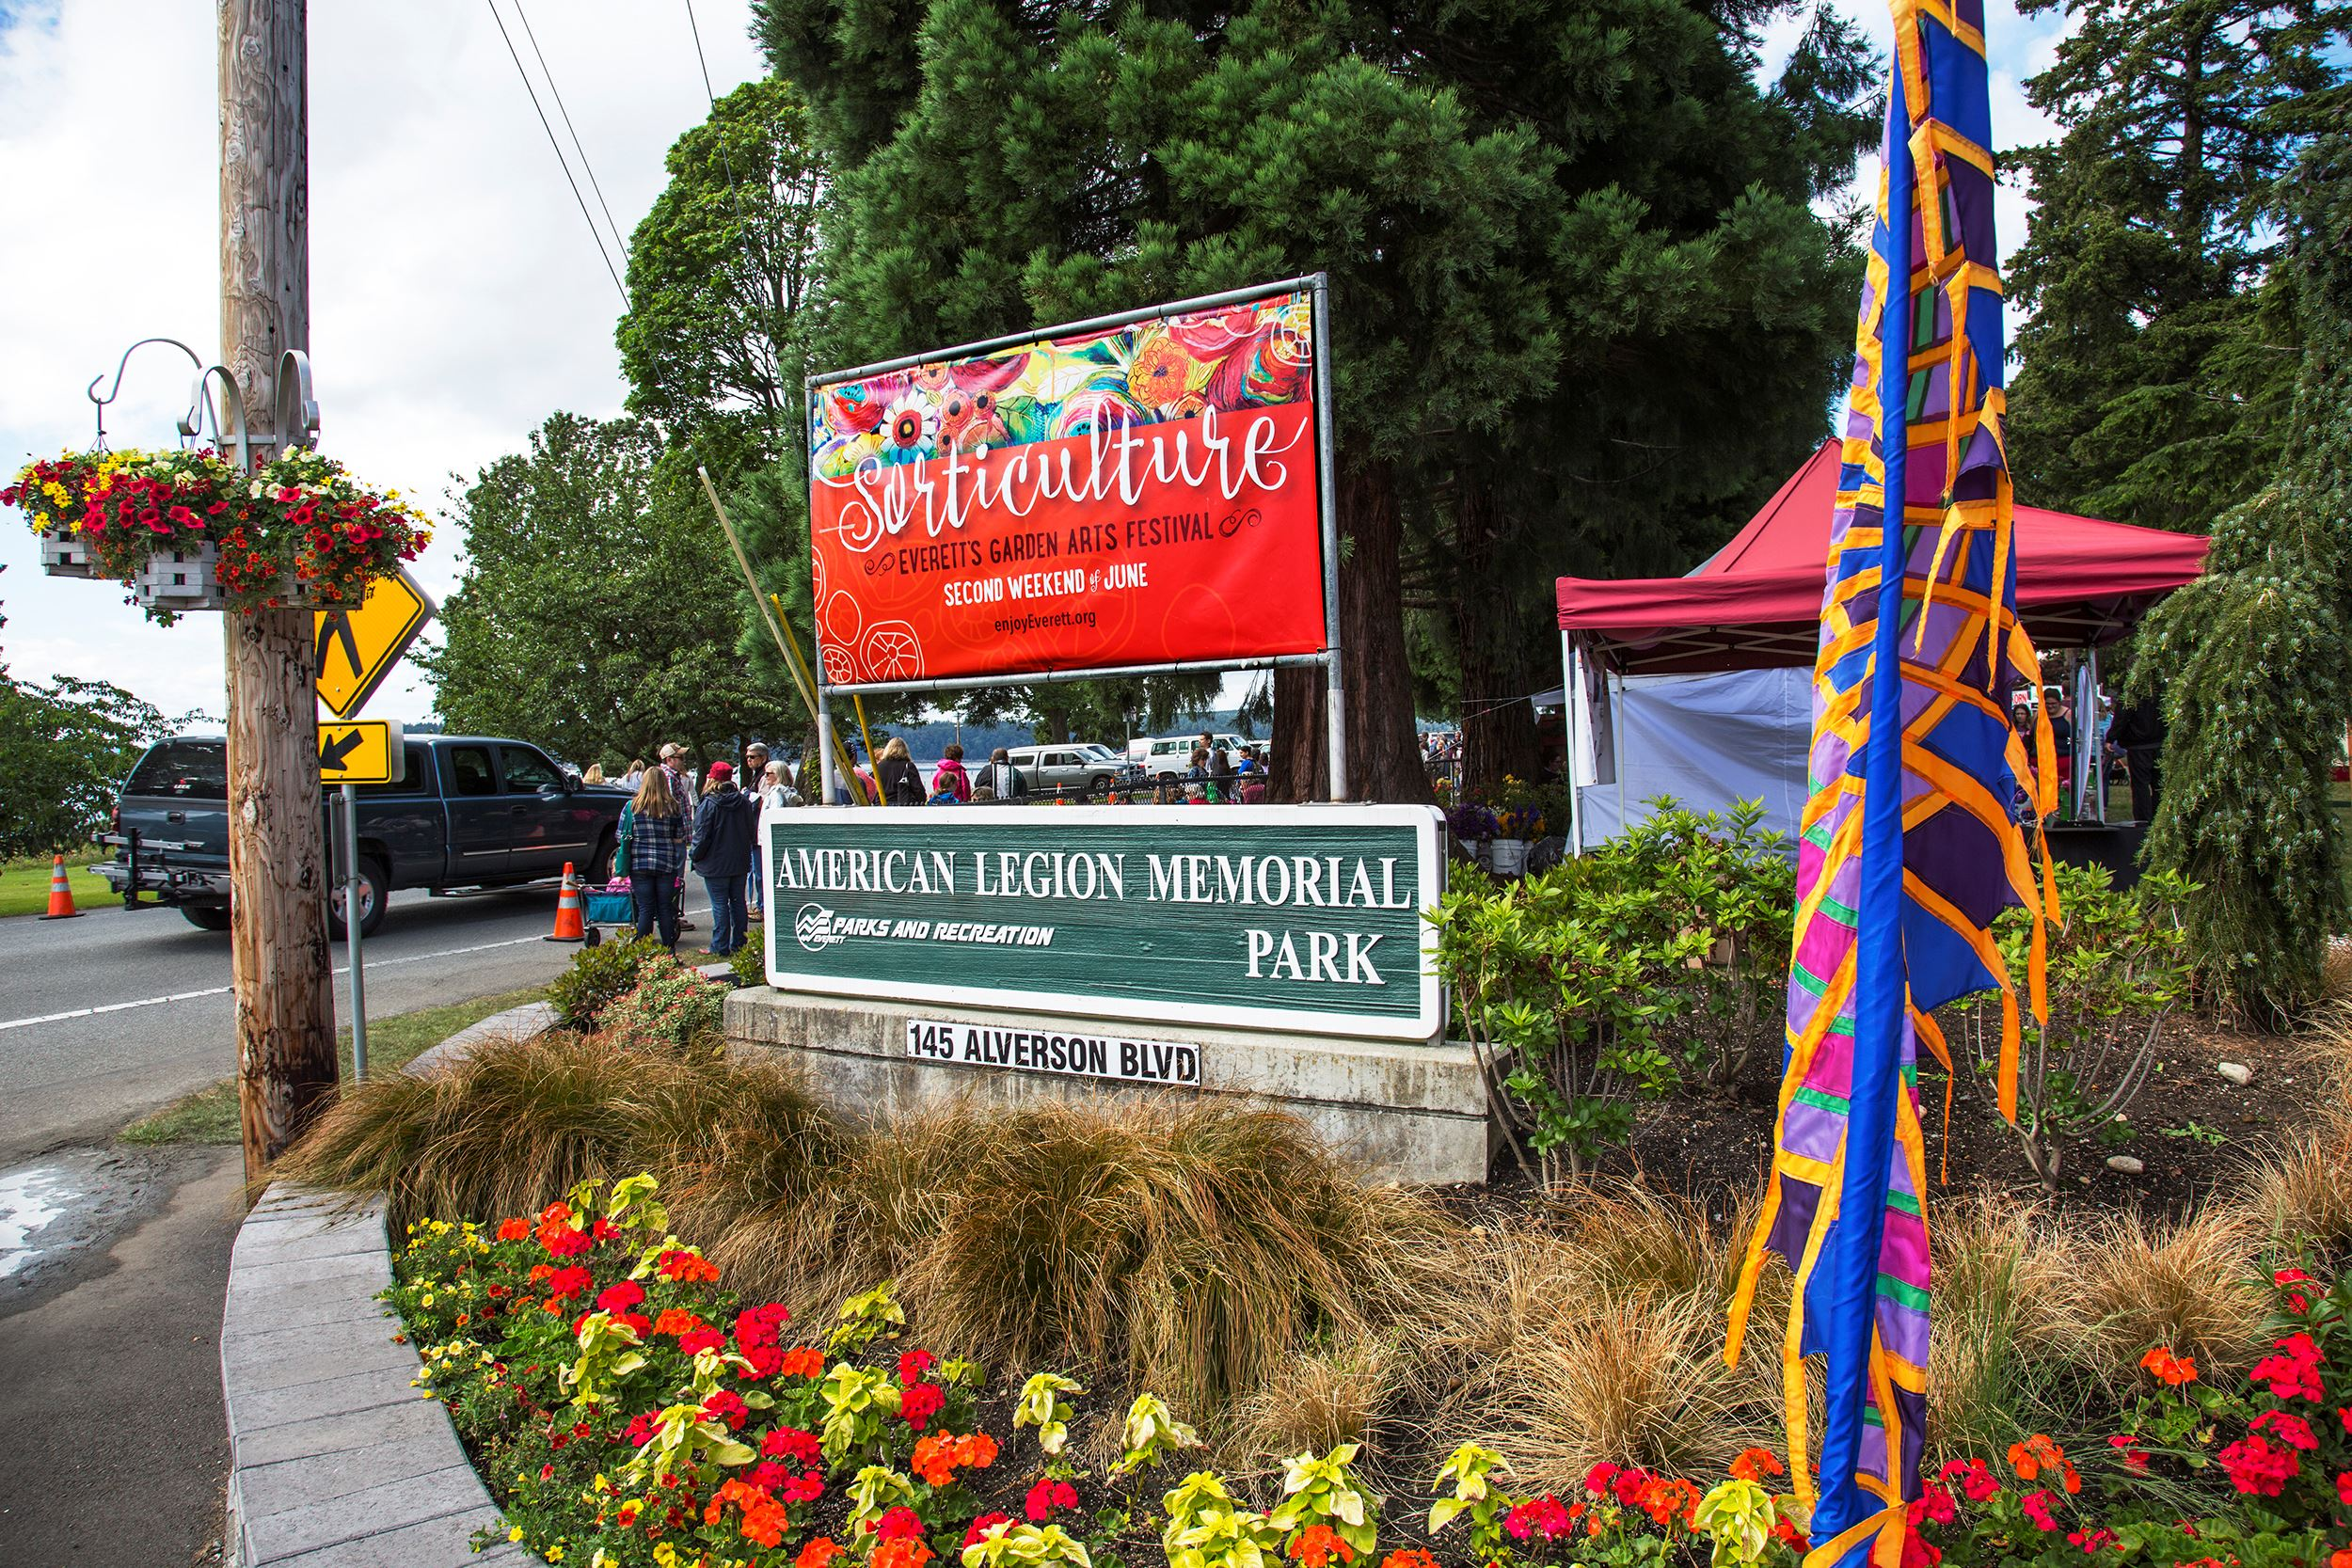 Sorticulture 2016 Entrance Signs